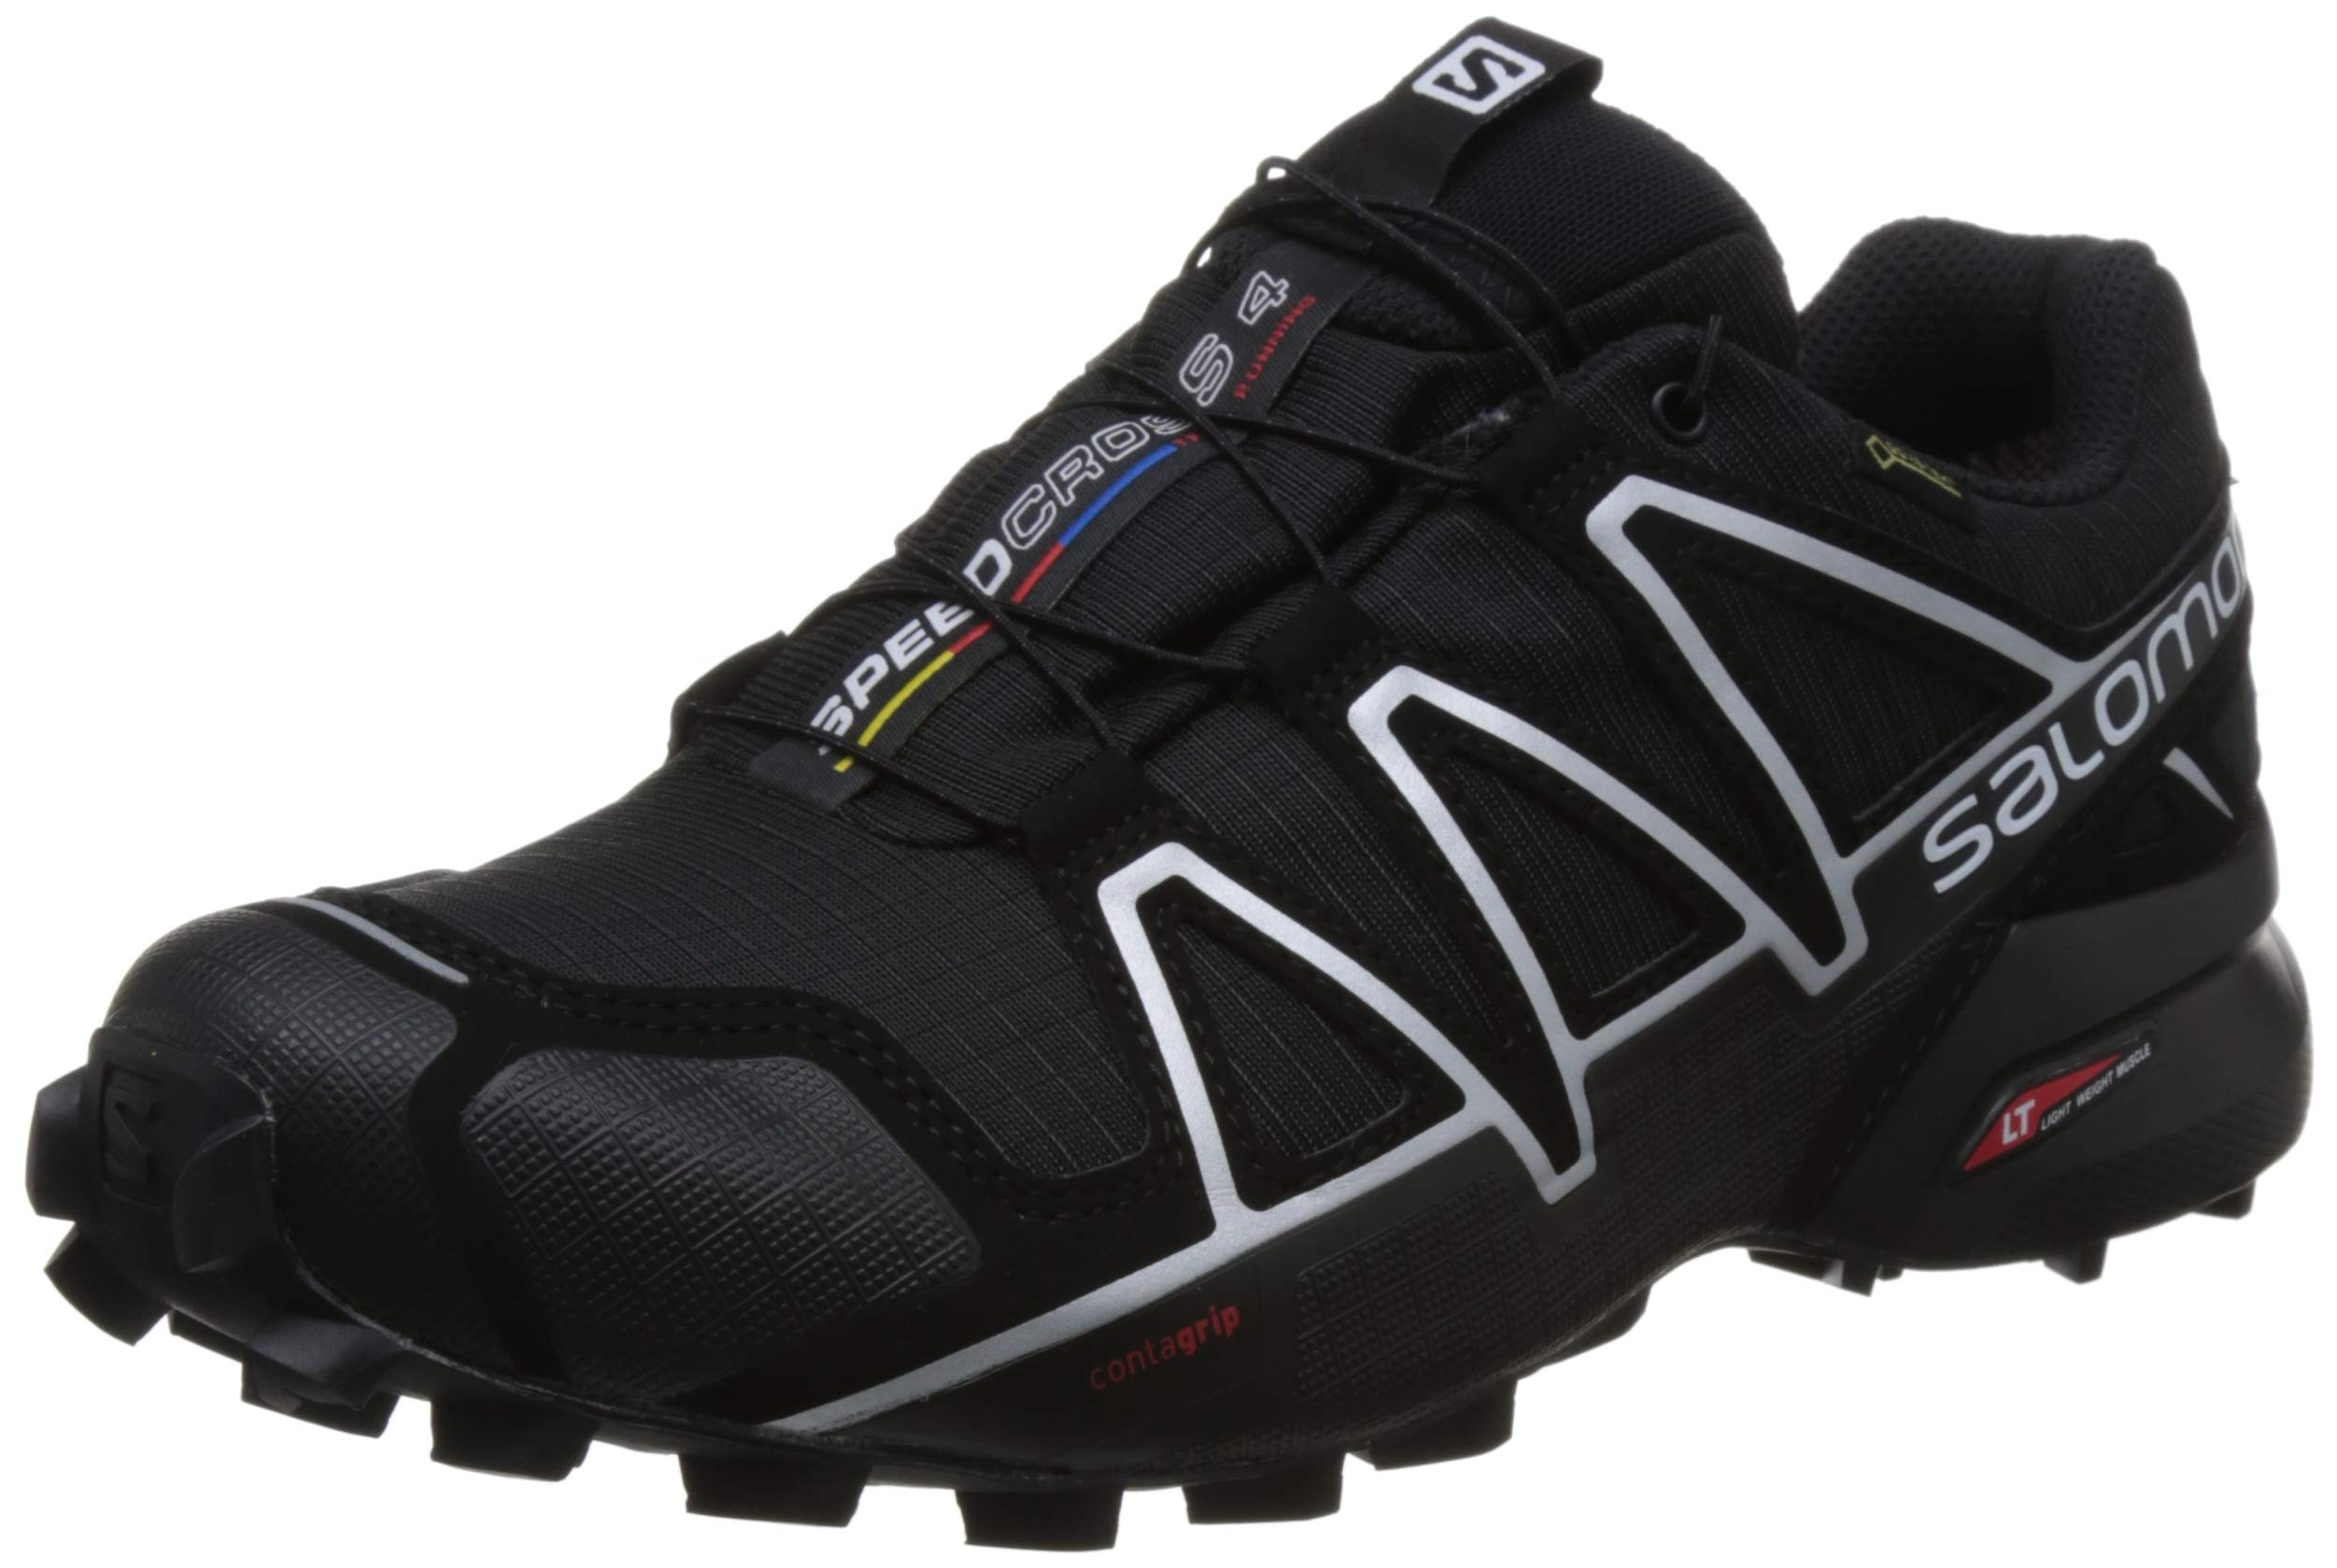 Salomon Speedcross 4 GTX, Scarpe da Trail Running Uomo, Nero (Black/Black/Silver Metallic-X)-383181